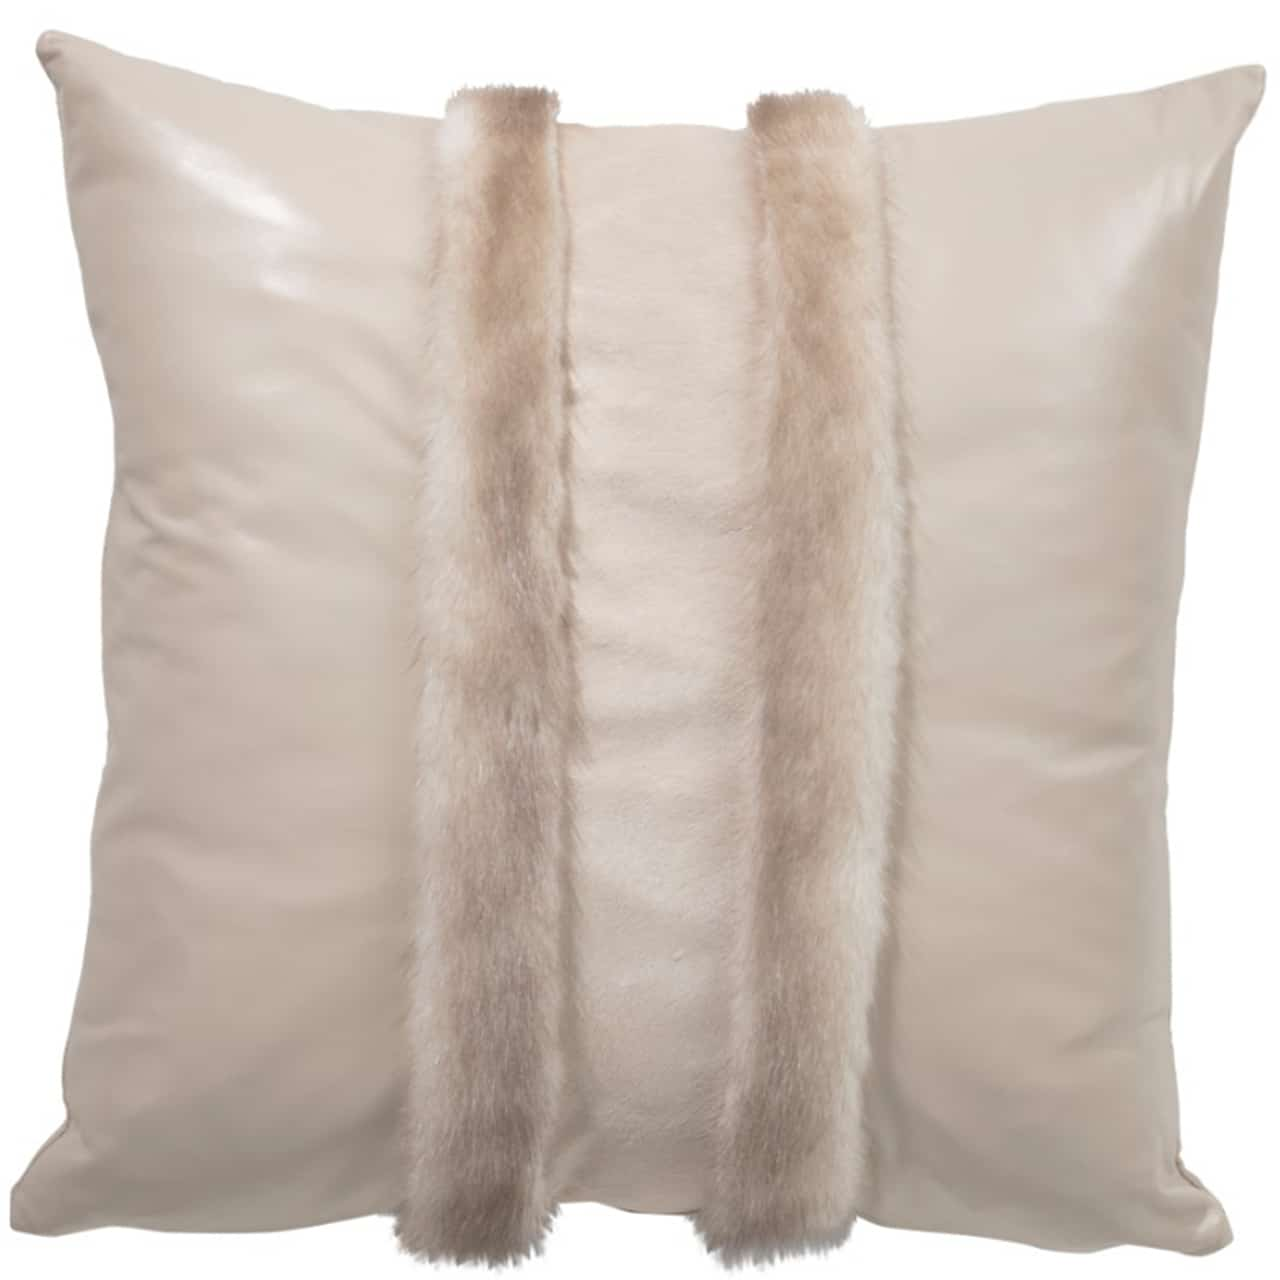 NEW-Mink Pillow- Cream V. 50x50cm (VPFB736ACDL5050) - ANVOGG FEEL SHEARLING | ANVOGG